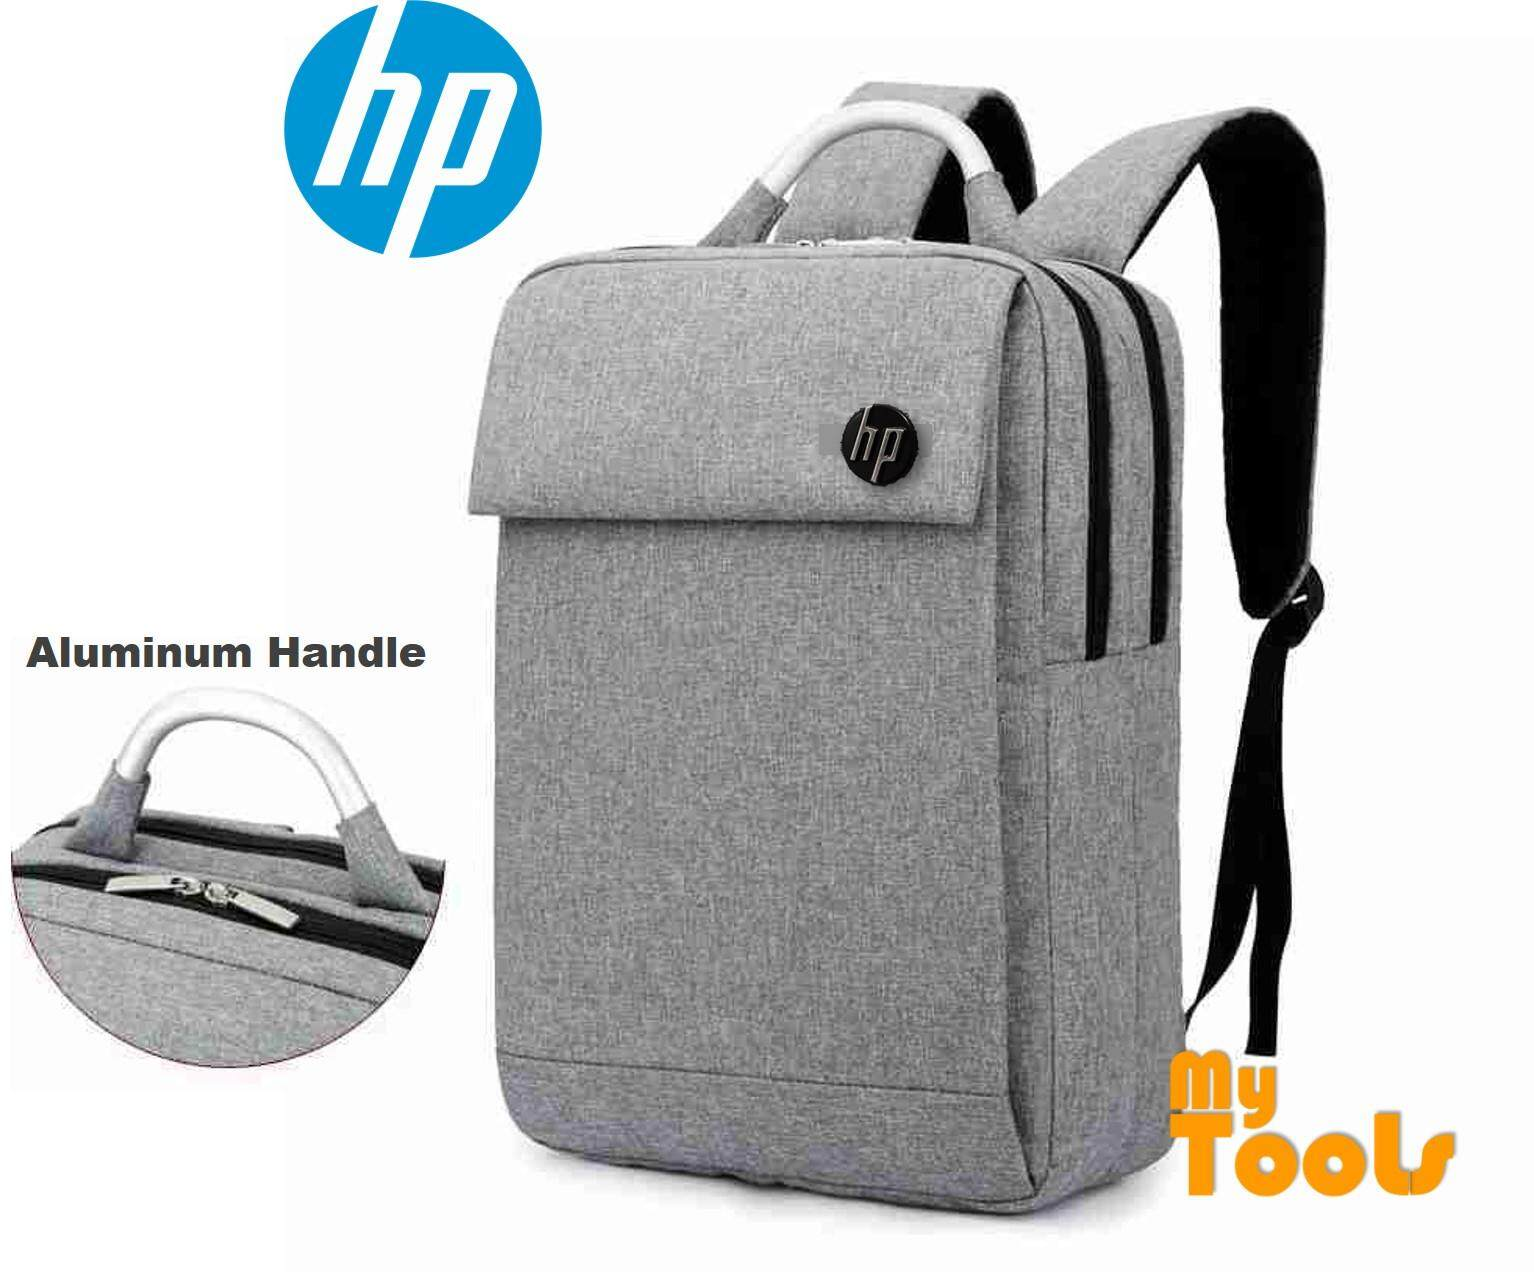 Laptop Bags 3 Buy At Best Price In Malaysia Www Softcase Notebook 12 Inch Zipper Hp 156 Double Layer Backpack Bag Aluminium Handle